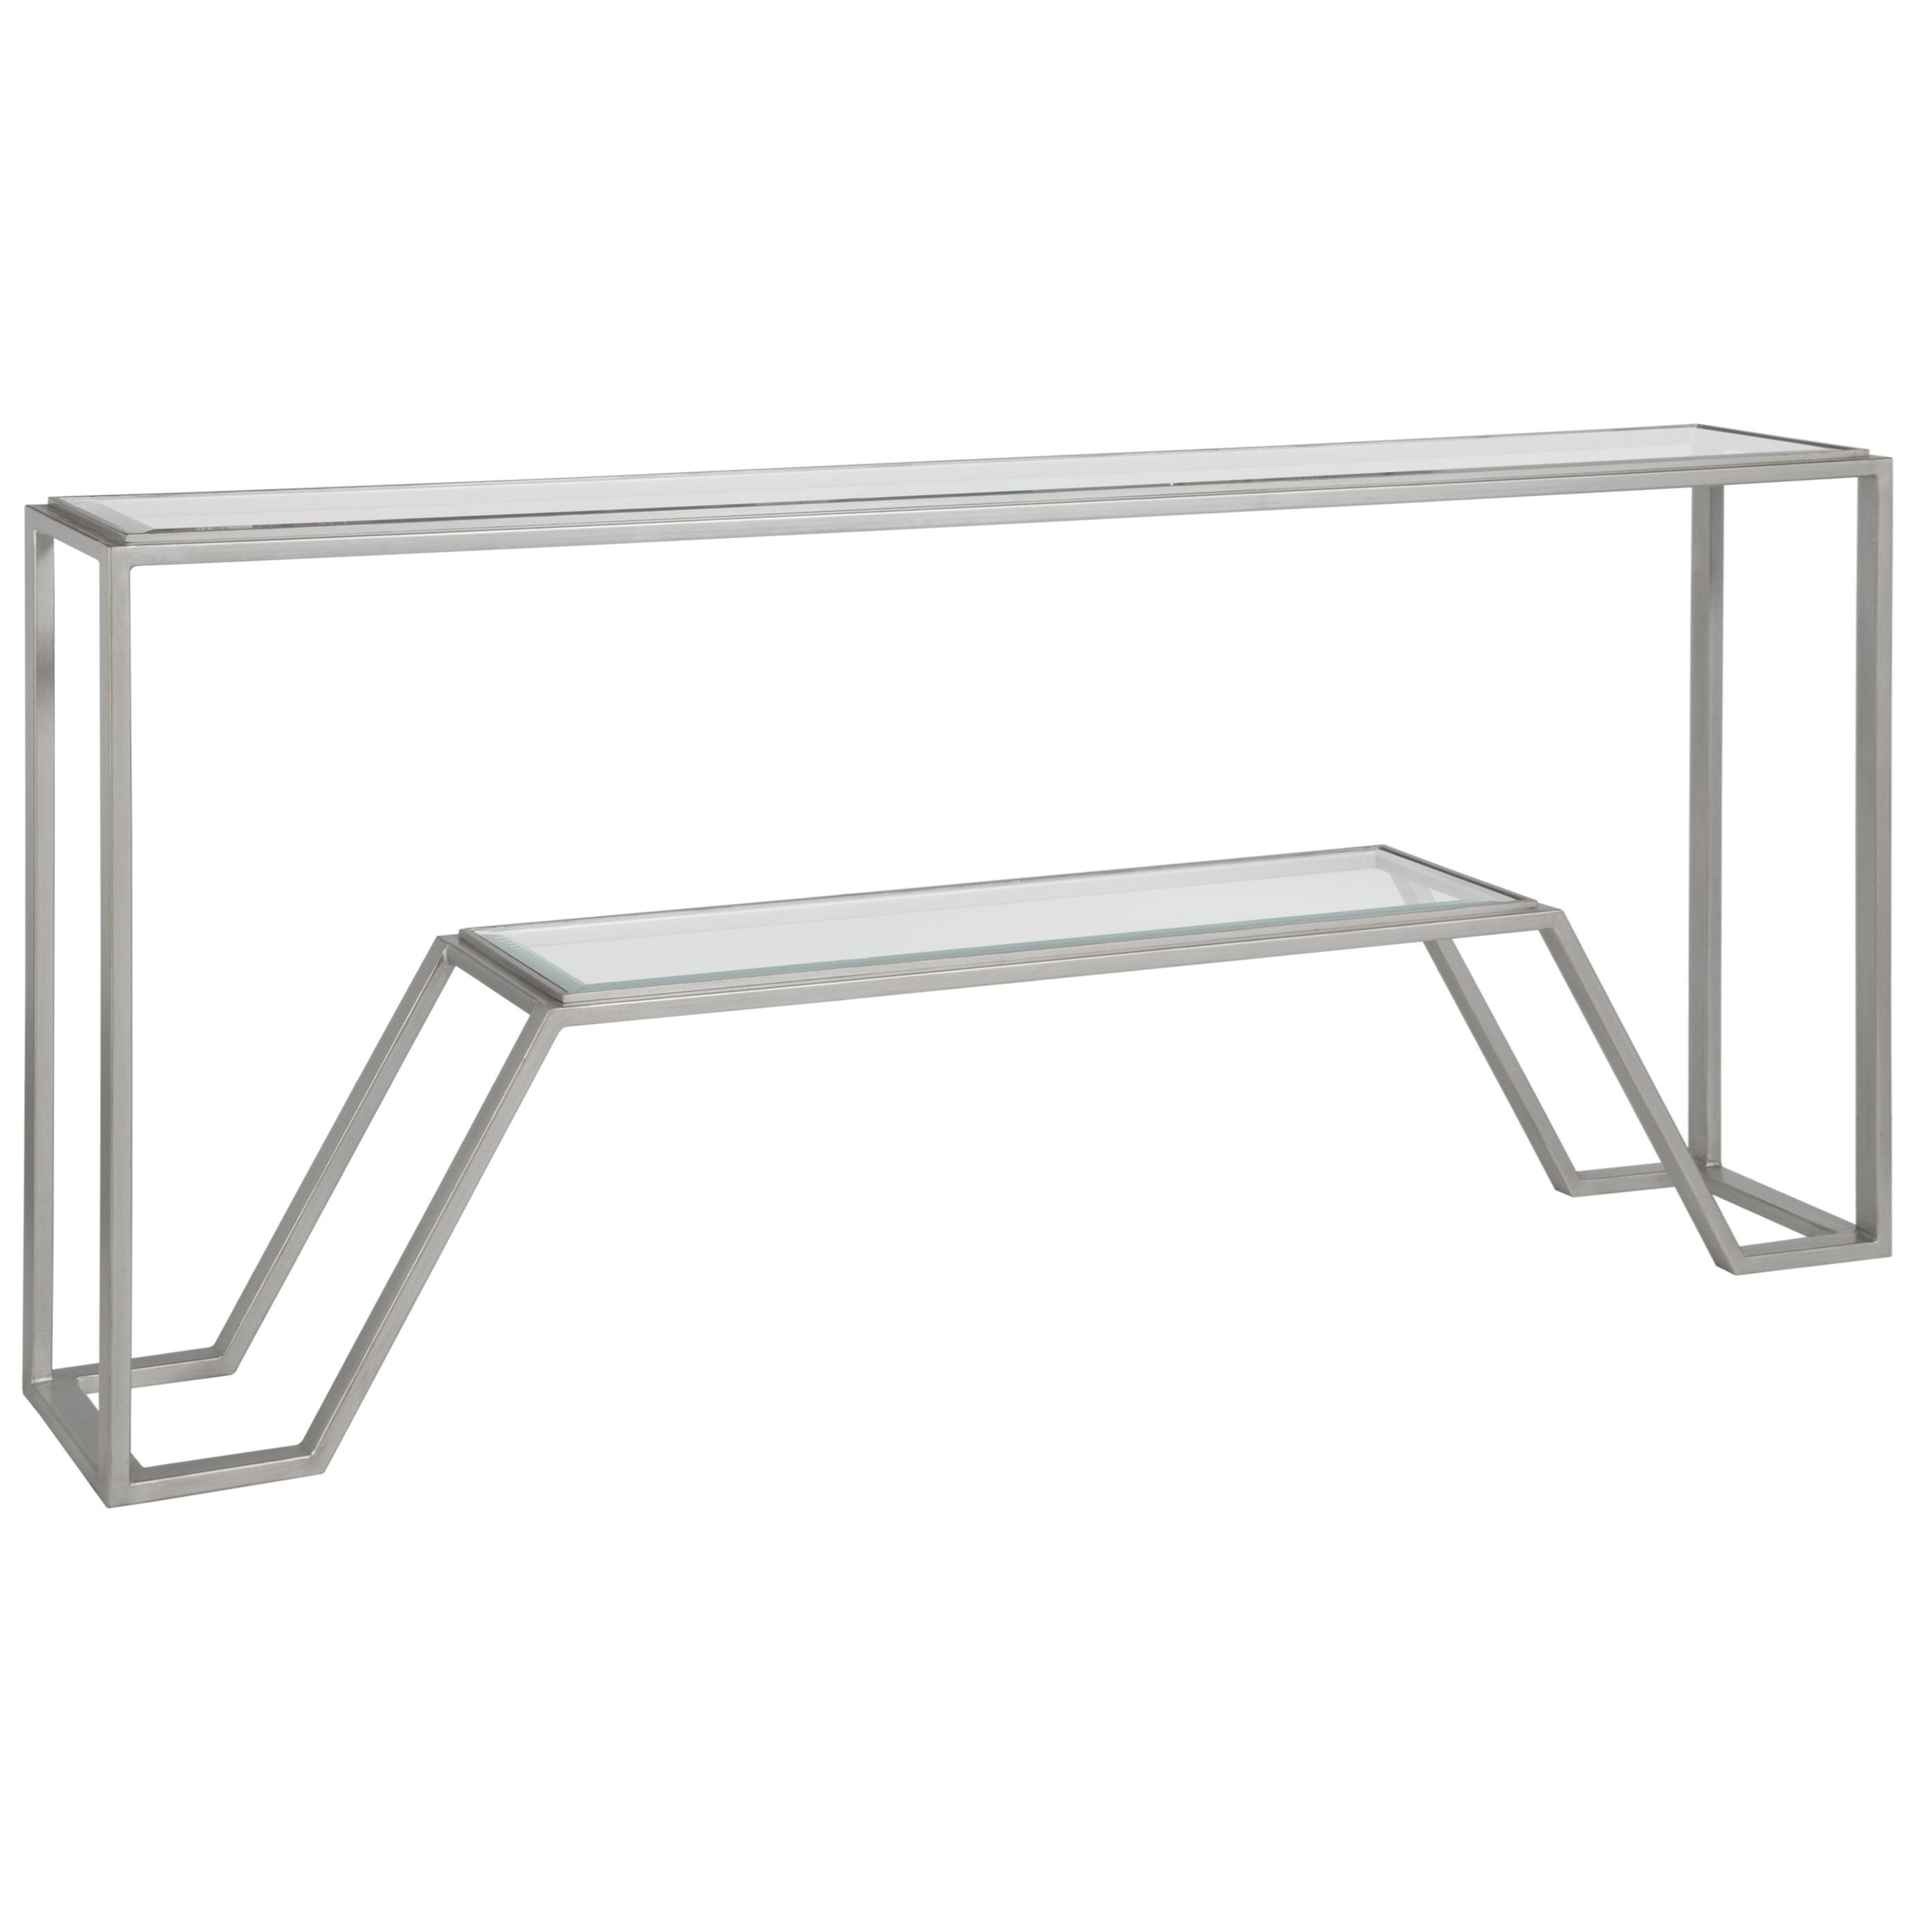 Metal Designs Byron Console by Artistica at Alison Craig Home Furnishings